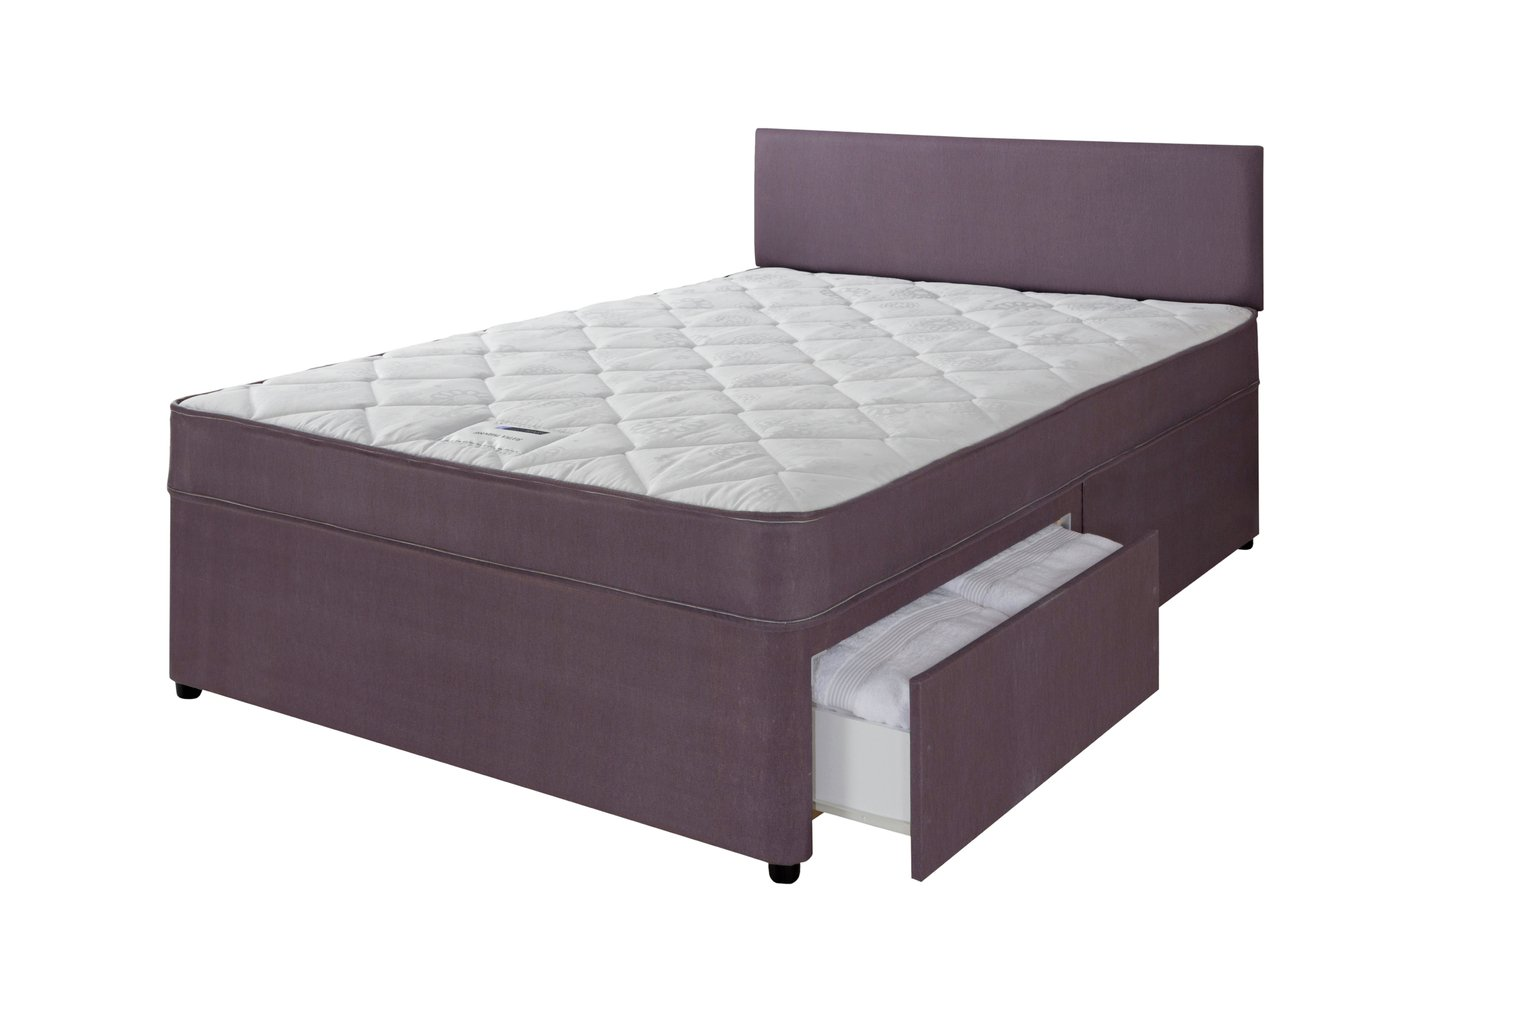 Forty Winks Newington Essential 2 Drawer Divan - Kingsize